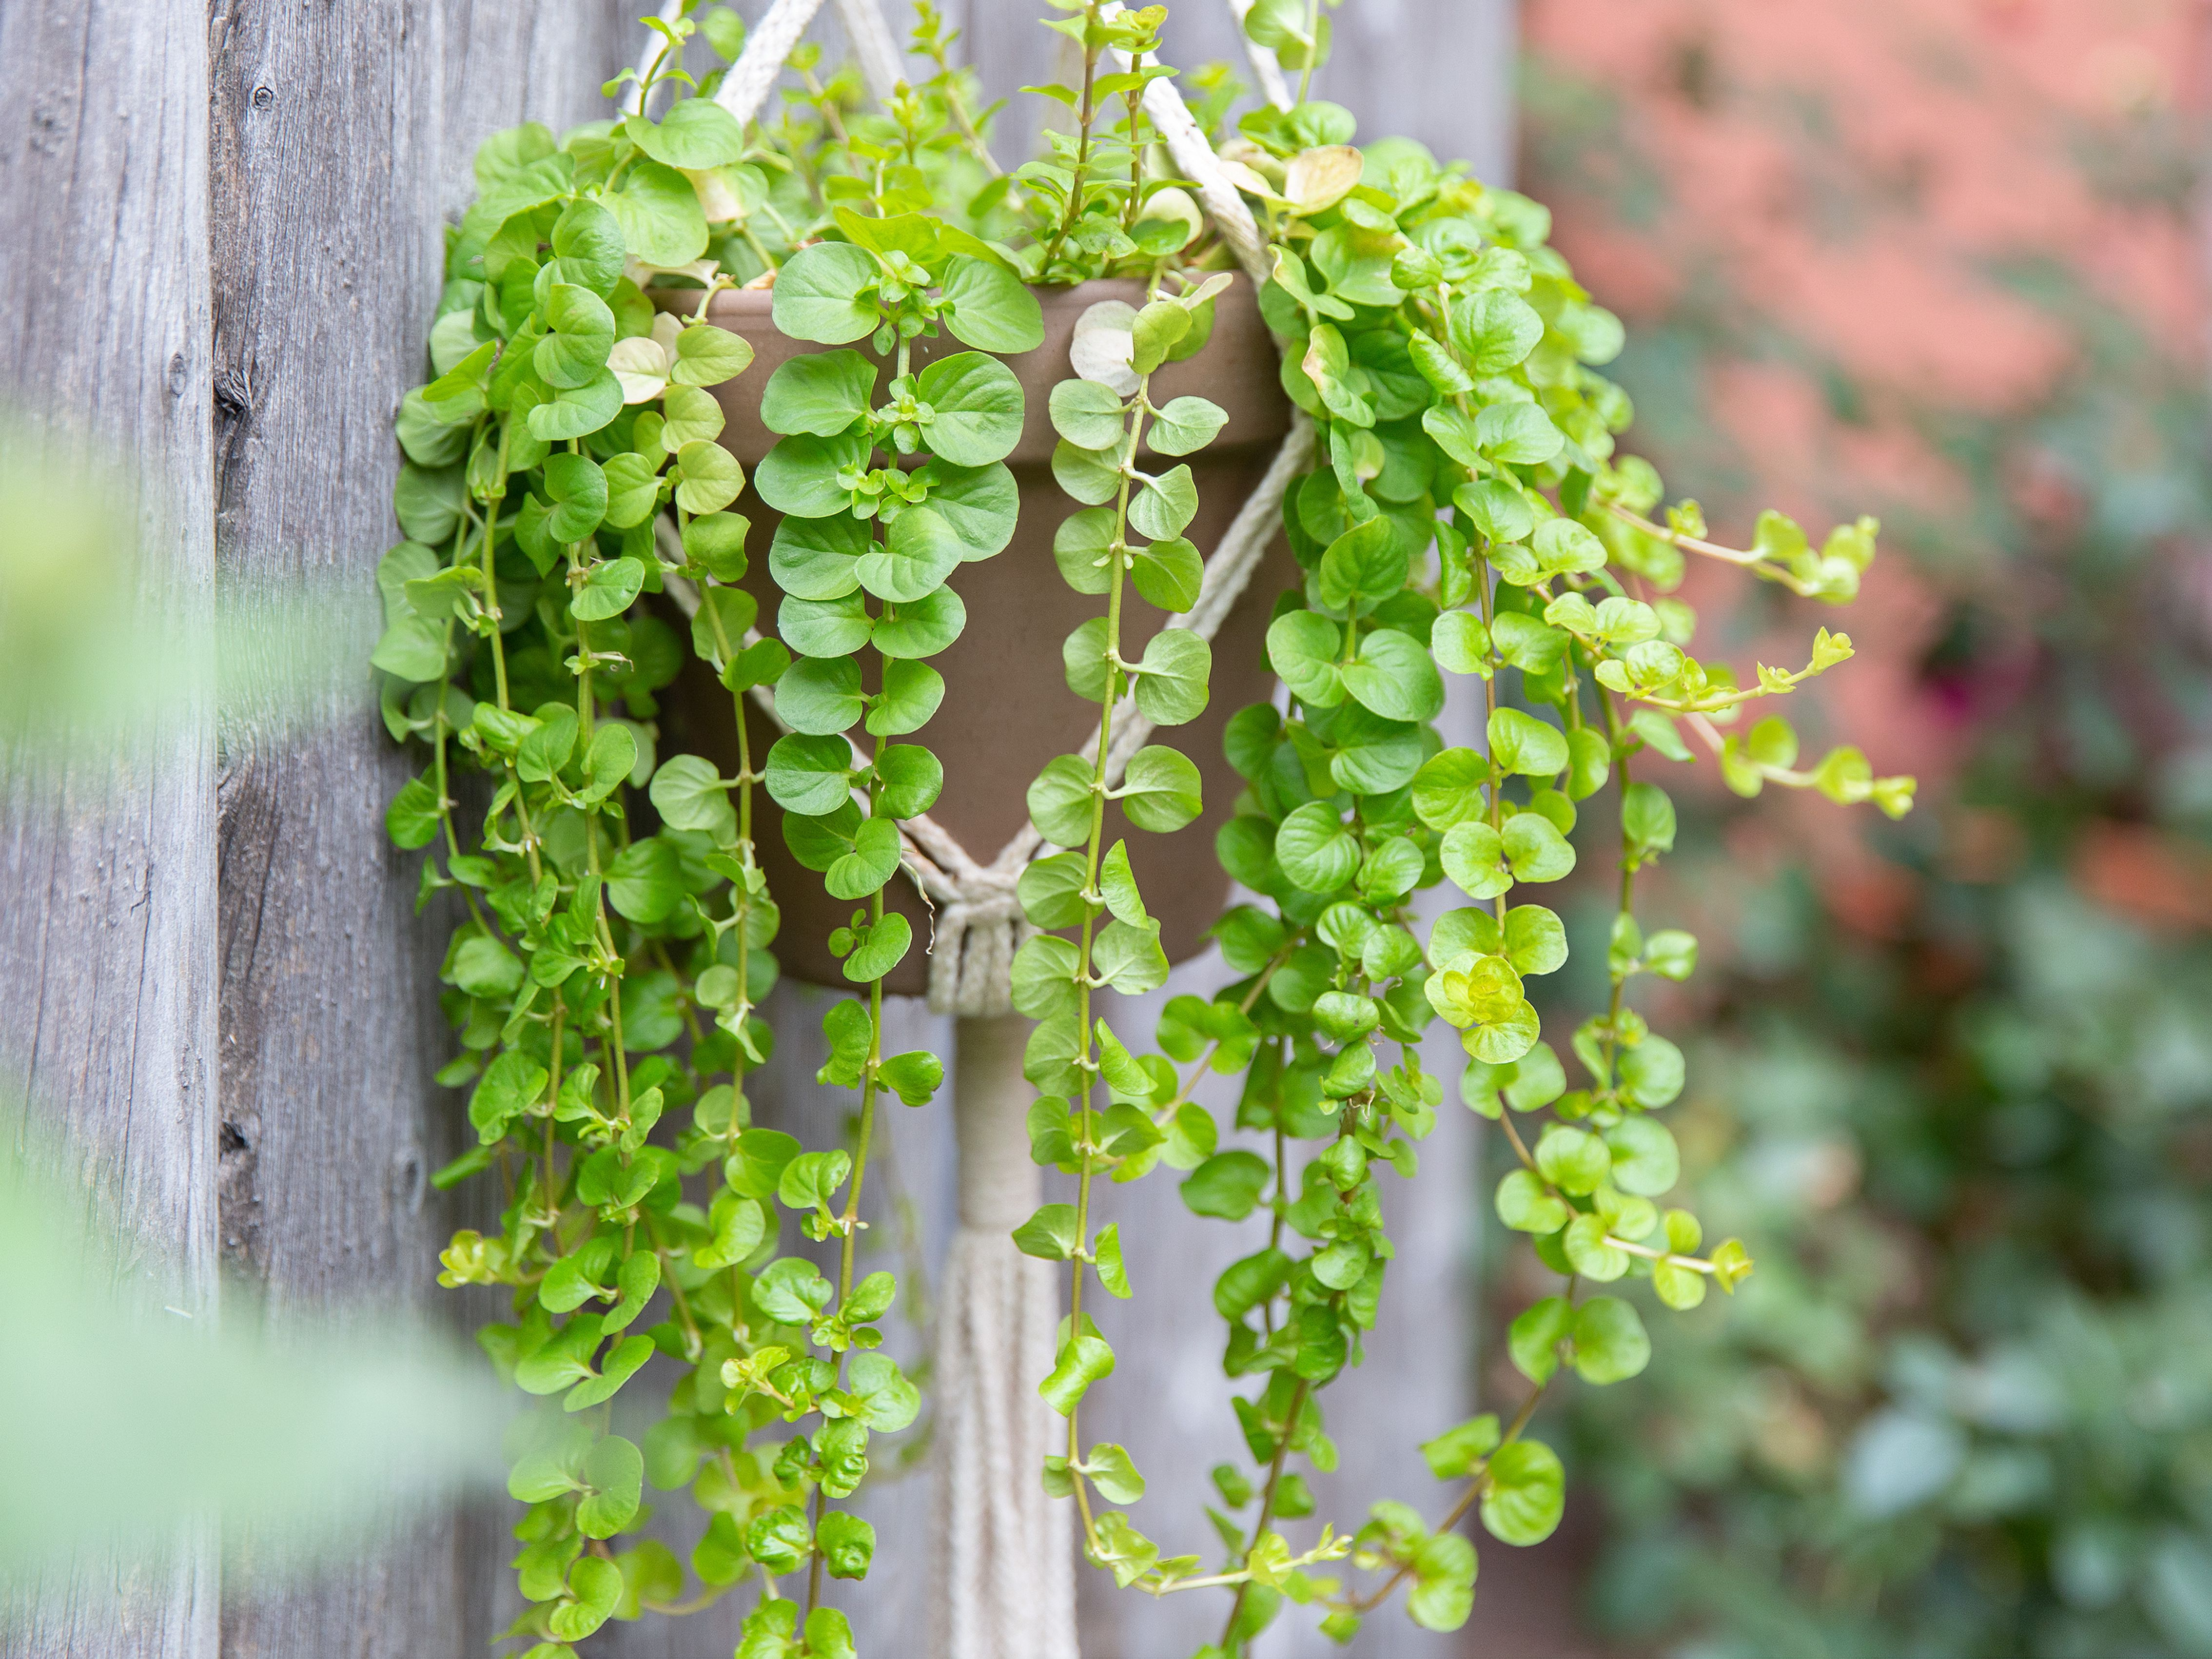 Creeping Jenny Plant Care Growing Guide, Creeping Jenny Ground Cover Seeds